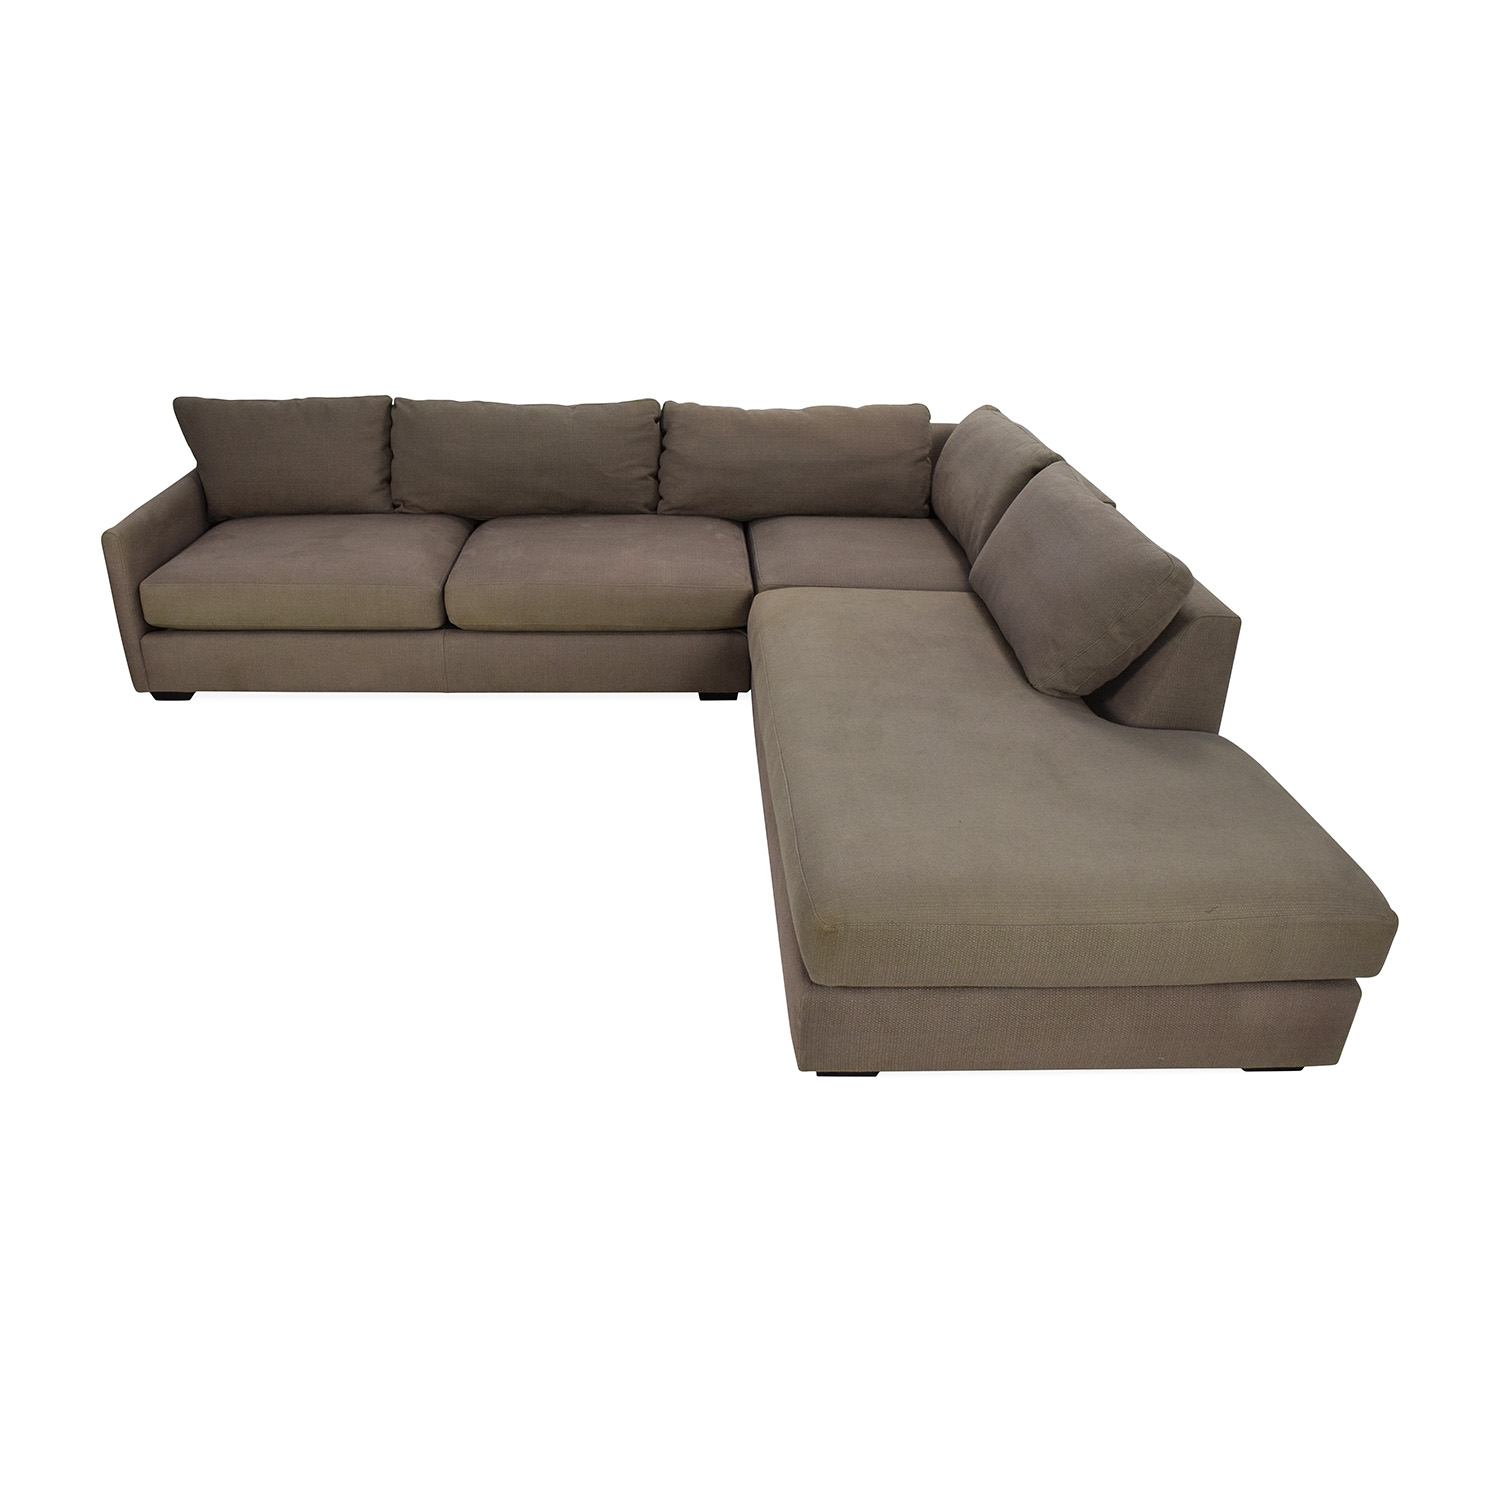 Crate & Barrel Domino Sectional Sofa / Sofas